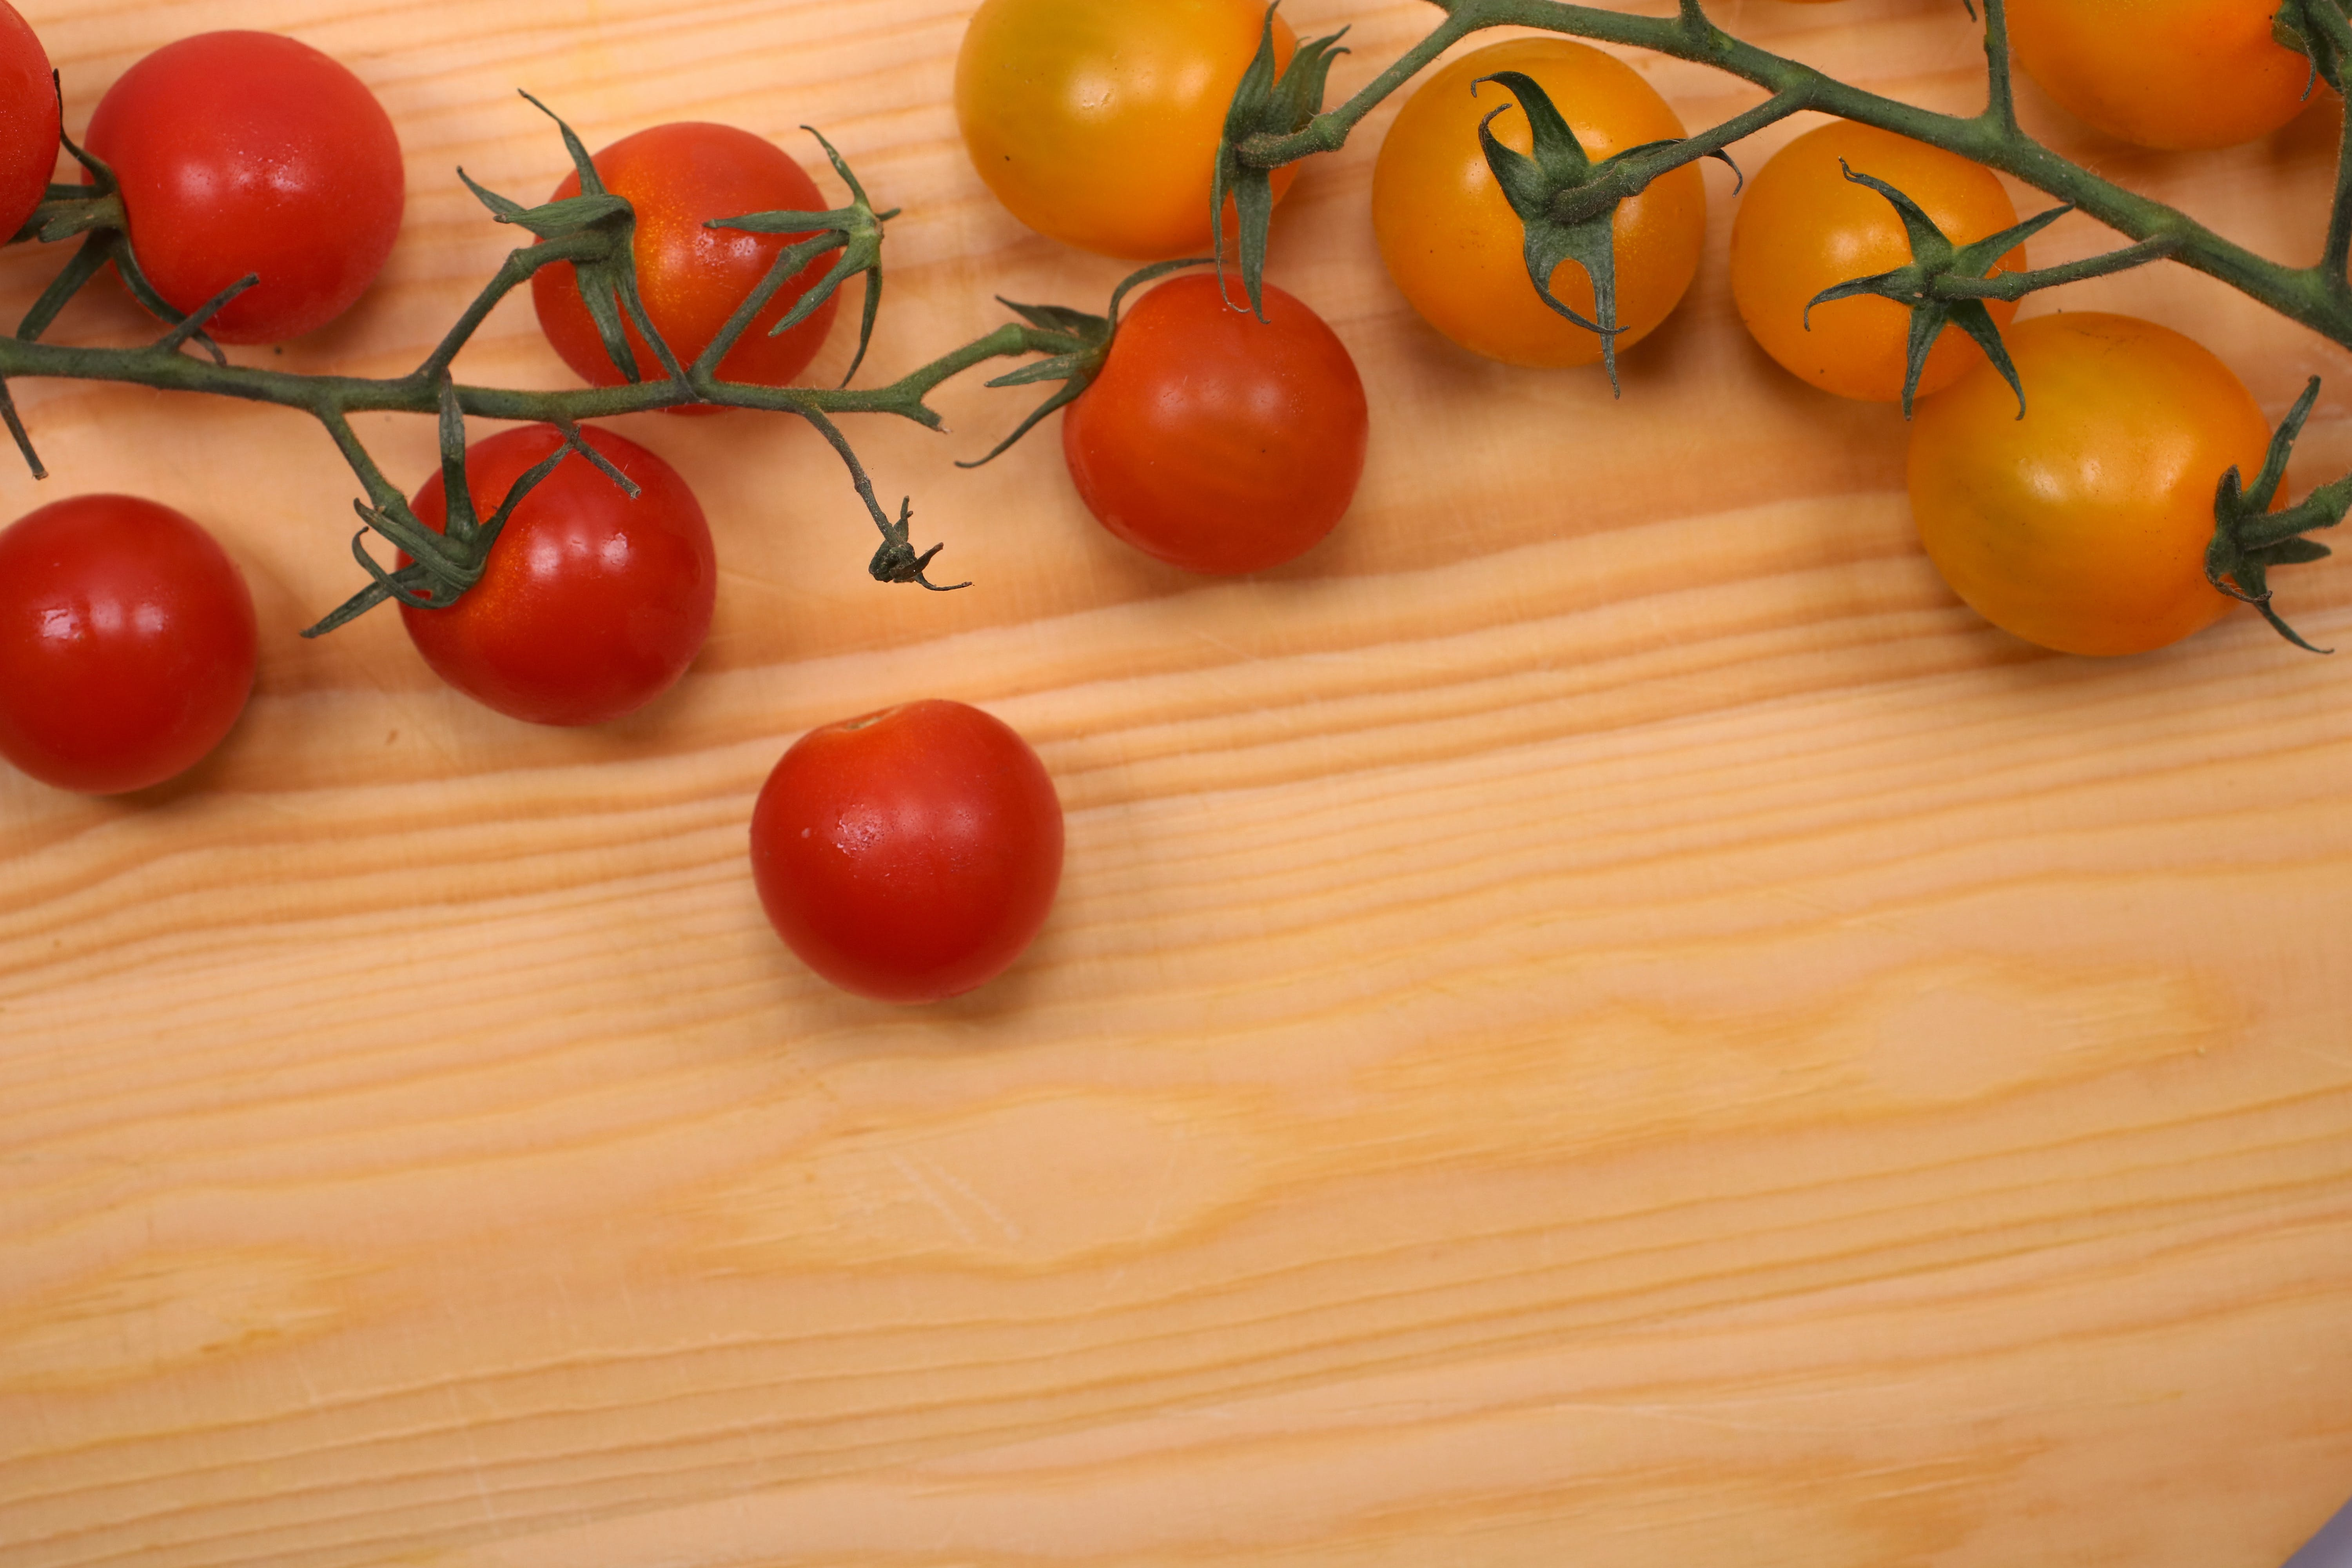 Free stock photo of food, eating, lunch, tomatoes